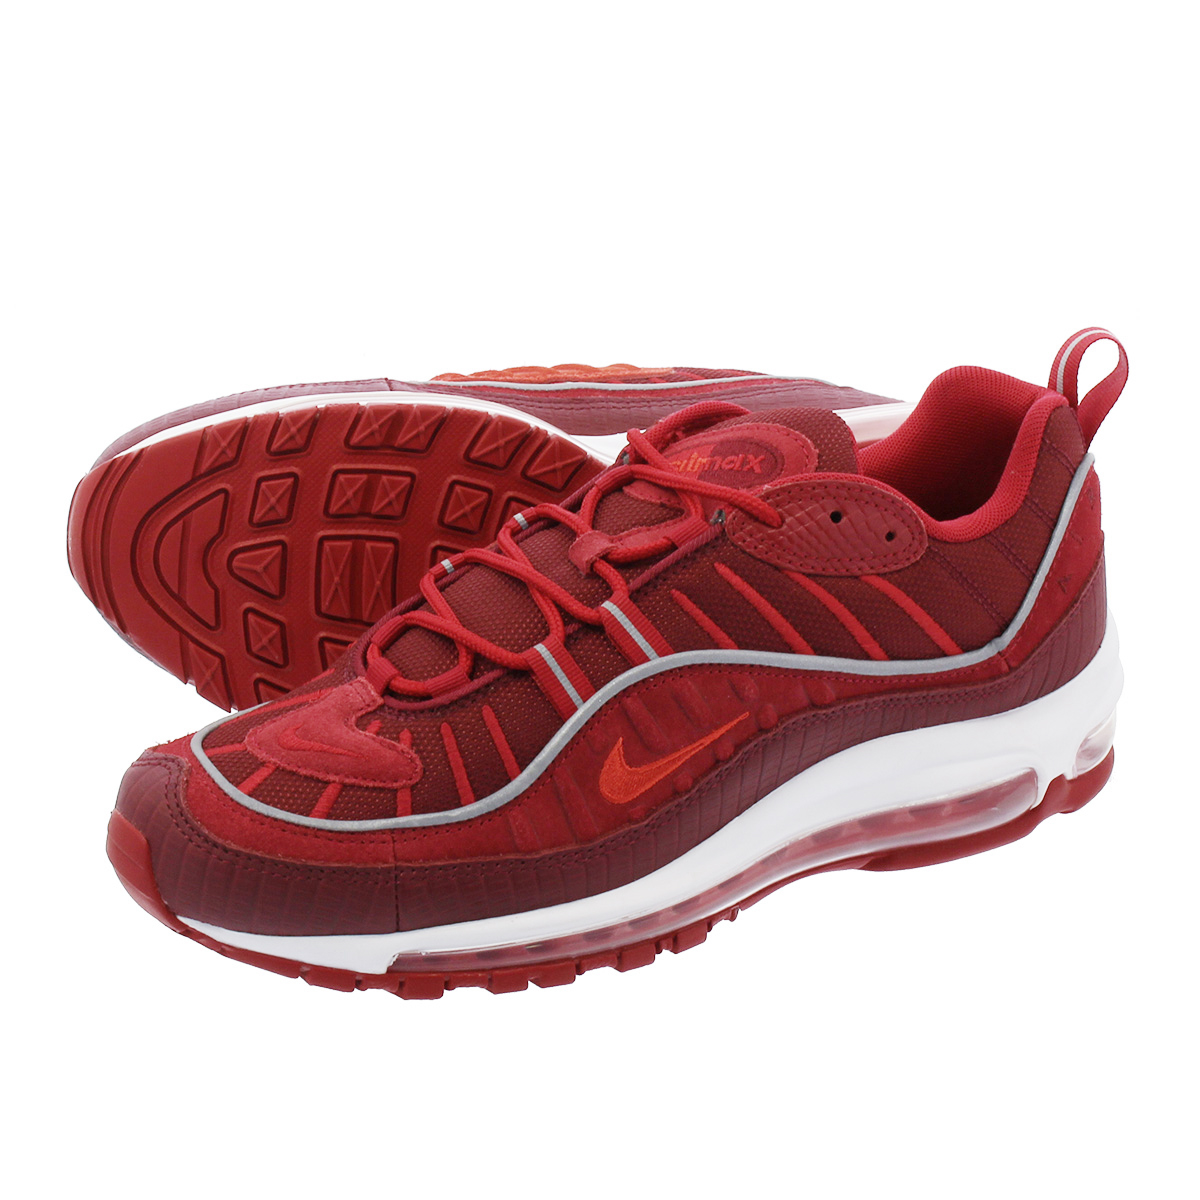 best website 2a2fe ff6c3 NIKE AIR MAX 98 SE Kie Ney AMAX 98 SE TEAM RED HABANERO RED GYM RED WHITE